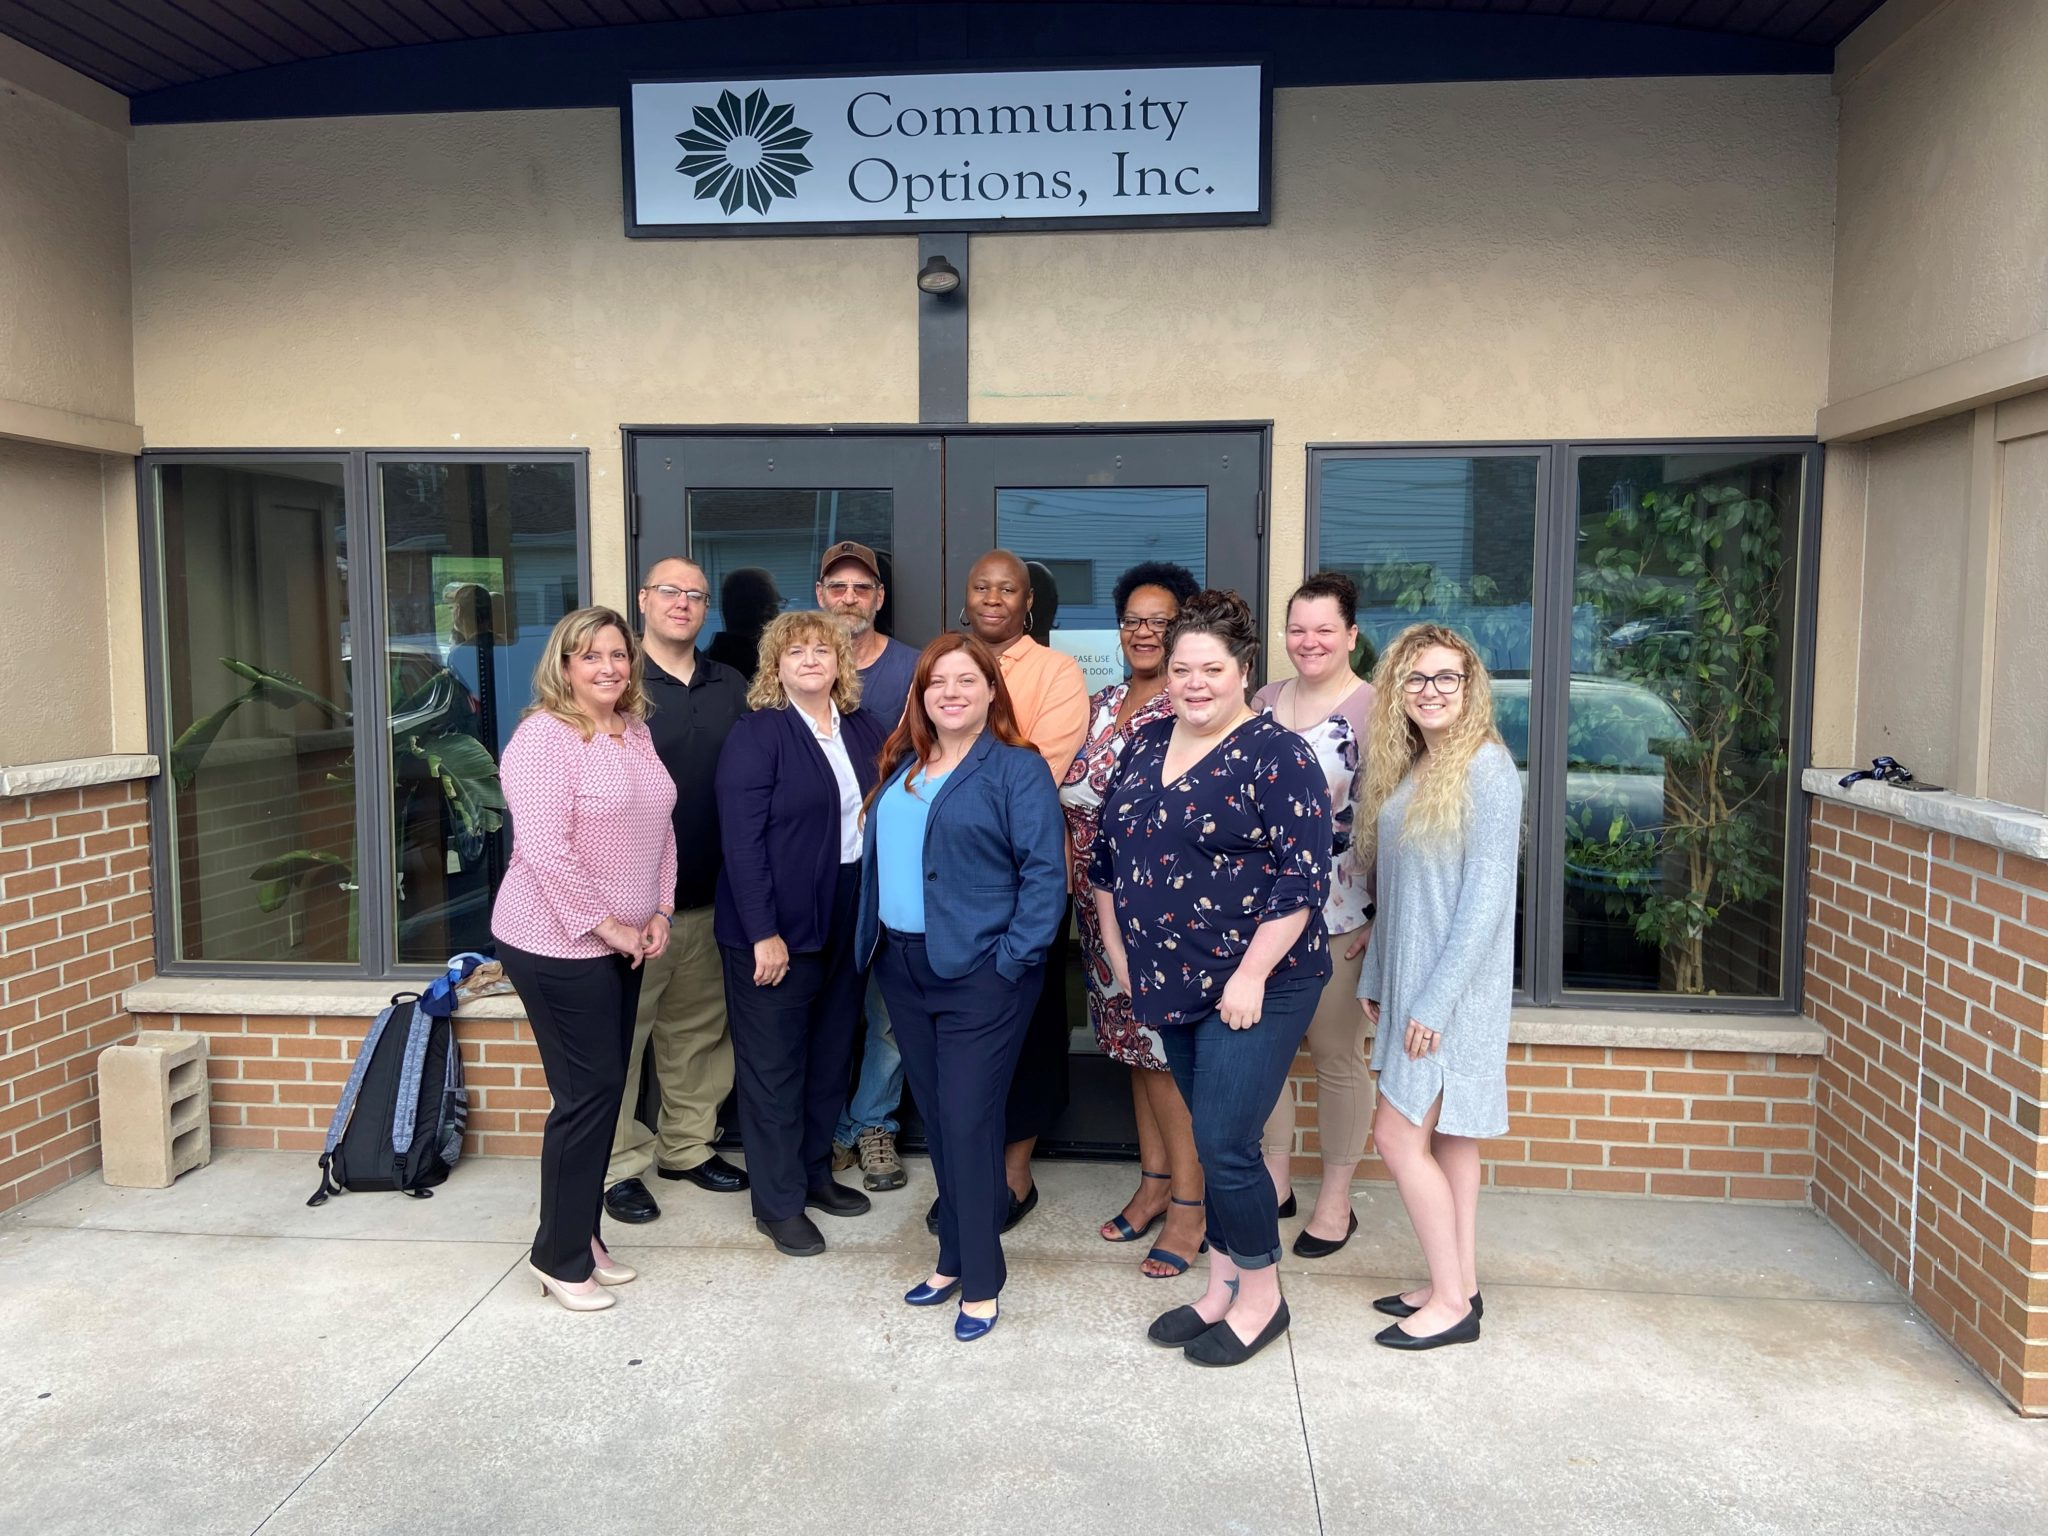 Community Options, Inc. of the Pocono region of PA was established in 2015 to provide community-based options for residential and employment support services to individuals with disabilities living in Albrightsville, Dallas, Drums, Moscow, Scranton, Weatherly, White Haven, Wilkes Barre, Wyoming and other local areas.